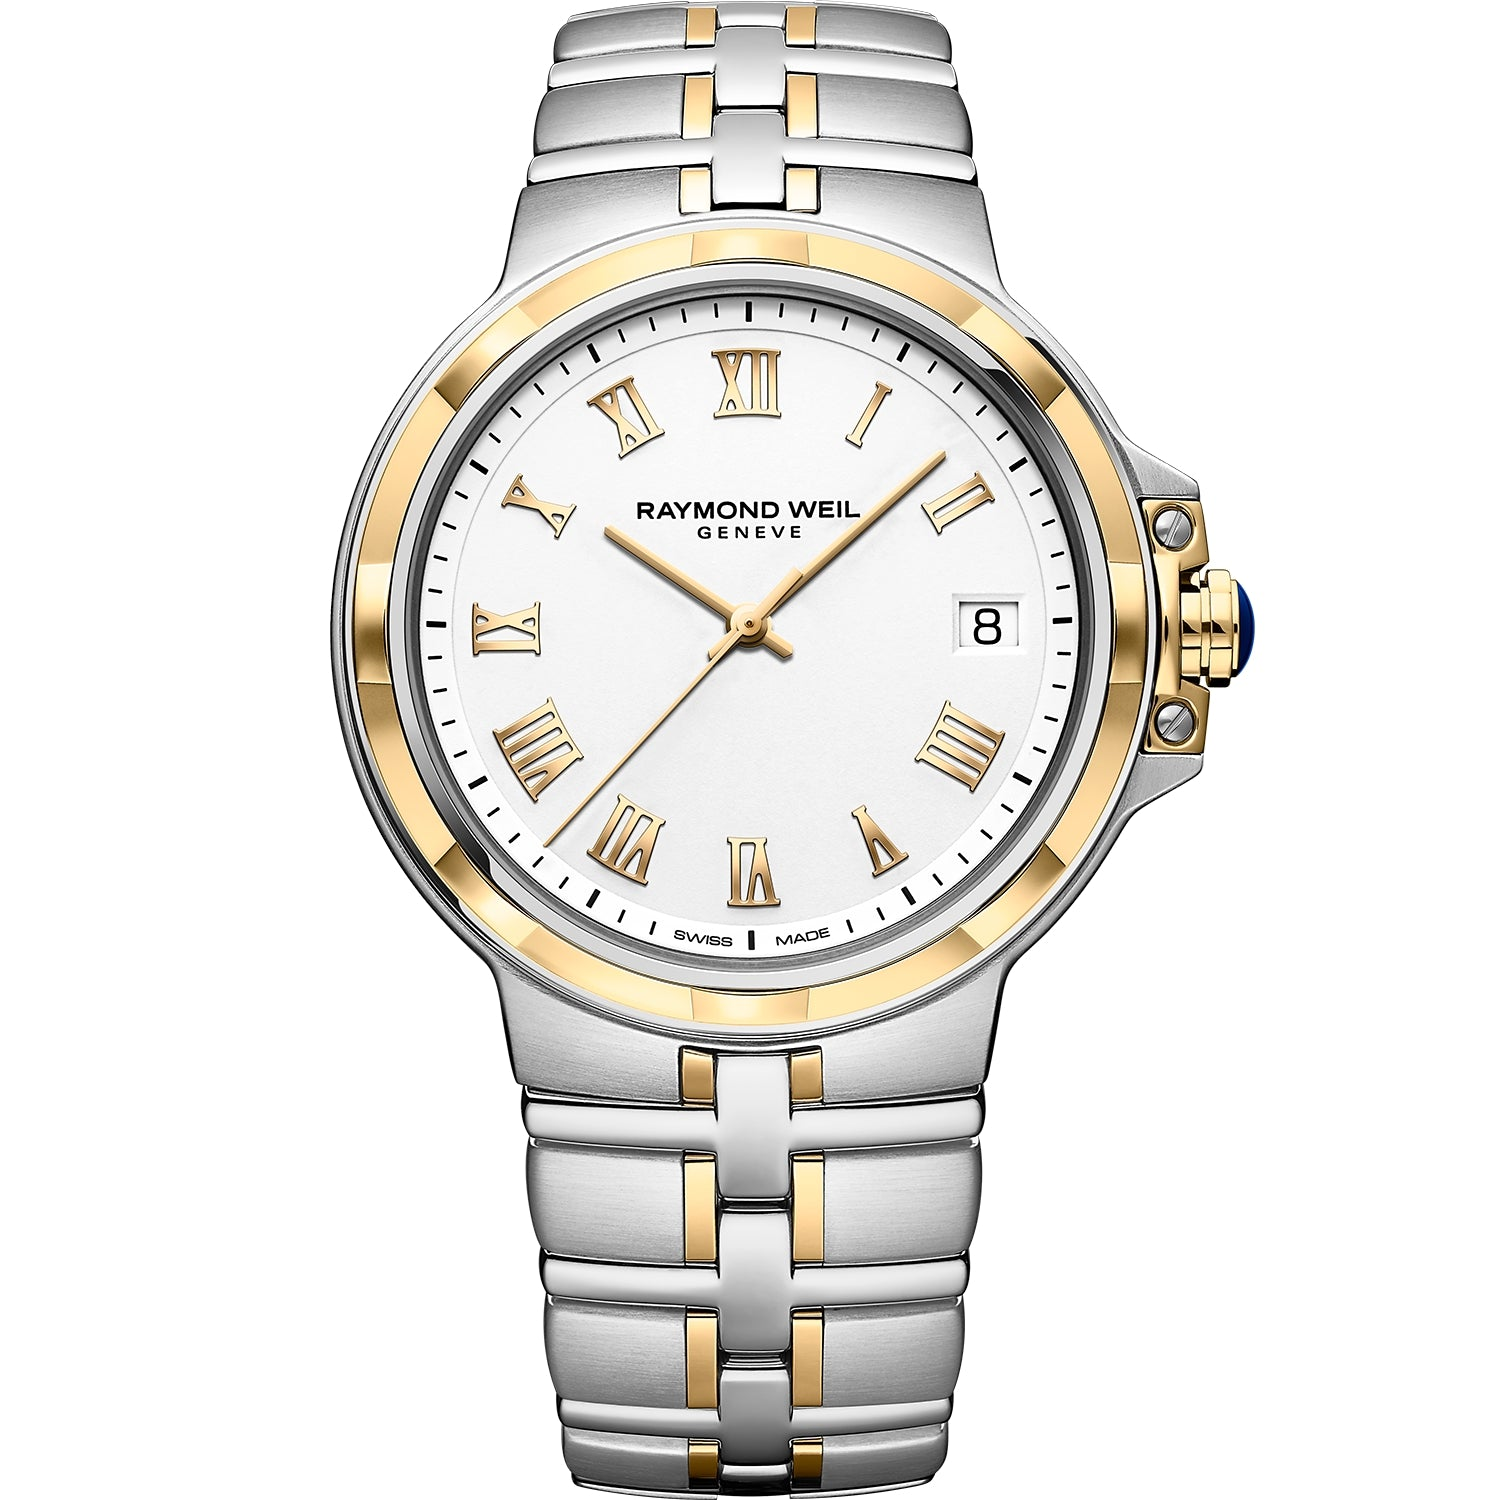 Parsifal Men's Quartz Classic White Dial Bracelet Watch 5580 -STP-00308